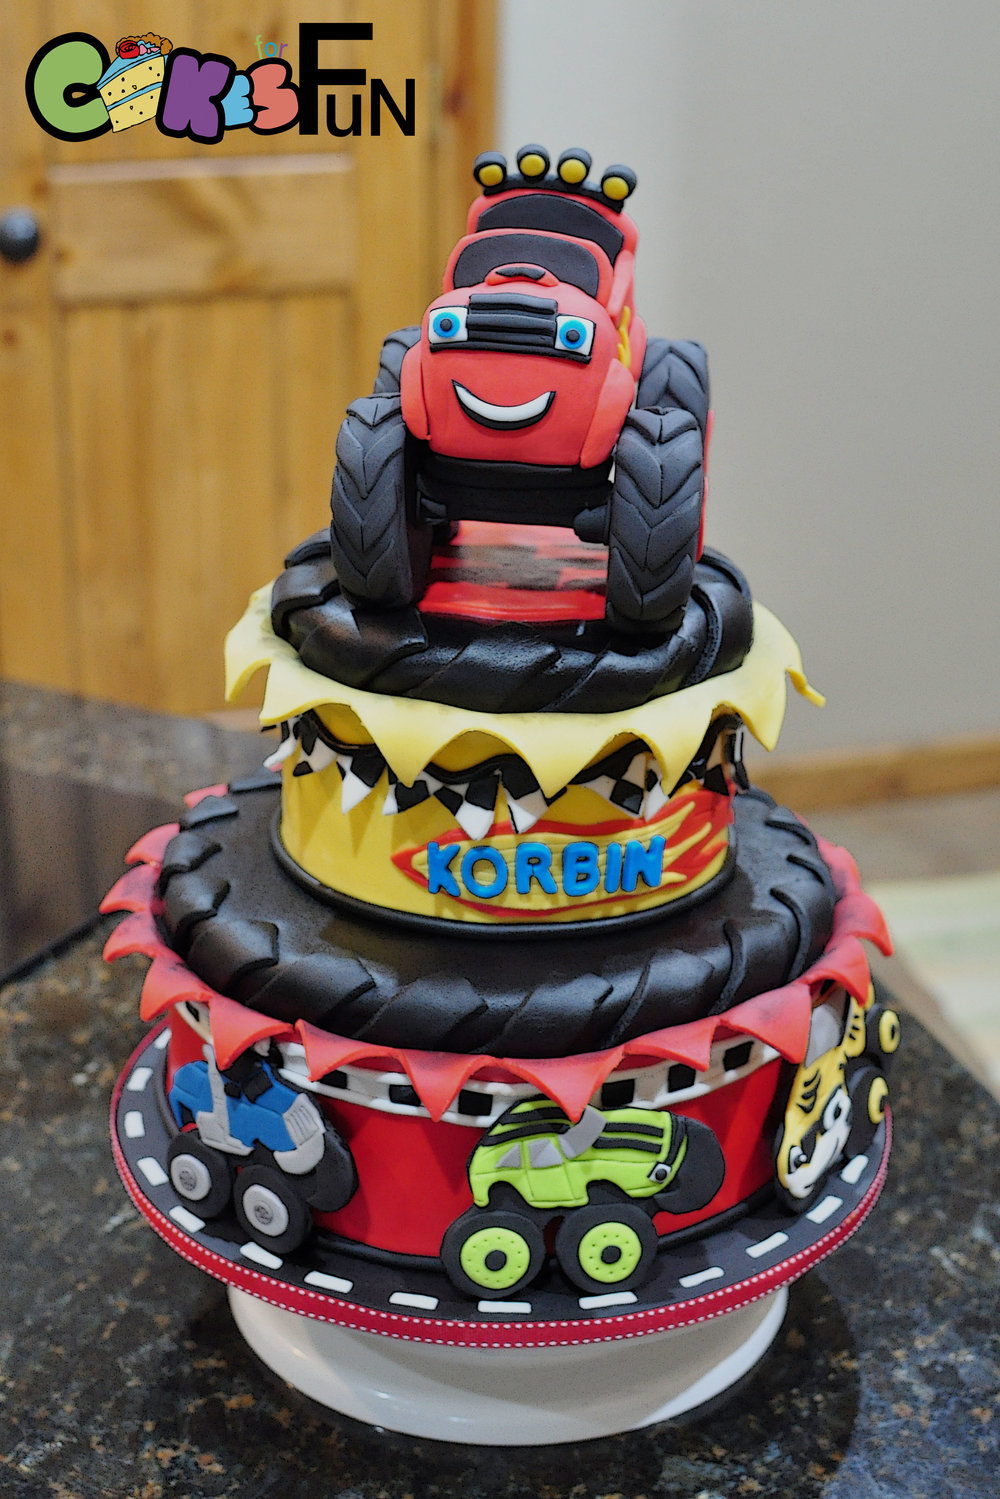 Blaze Monster Car Cake.jpg